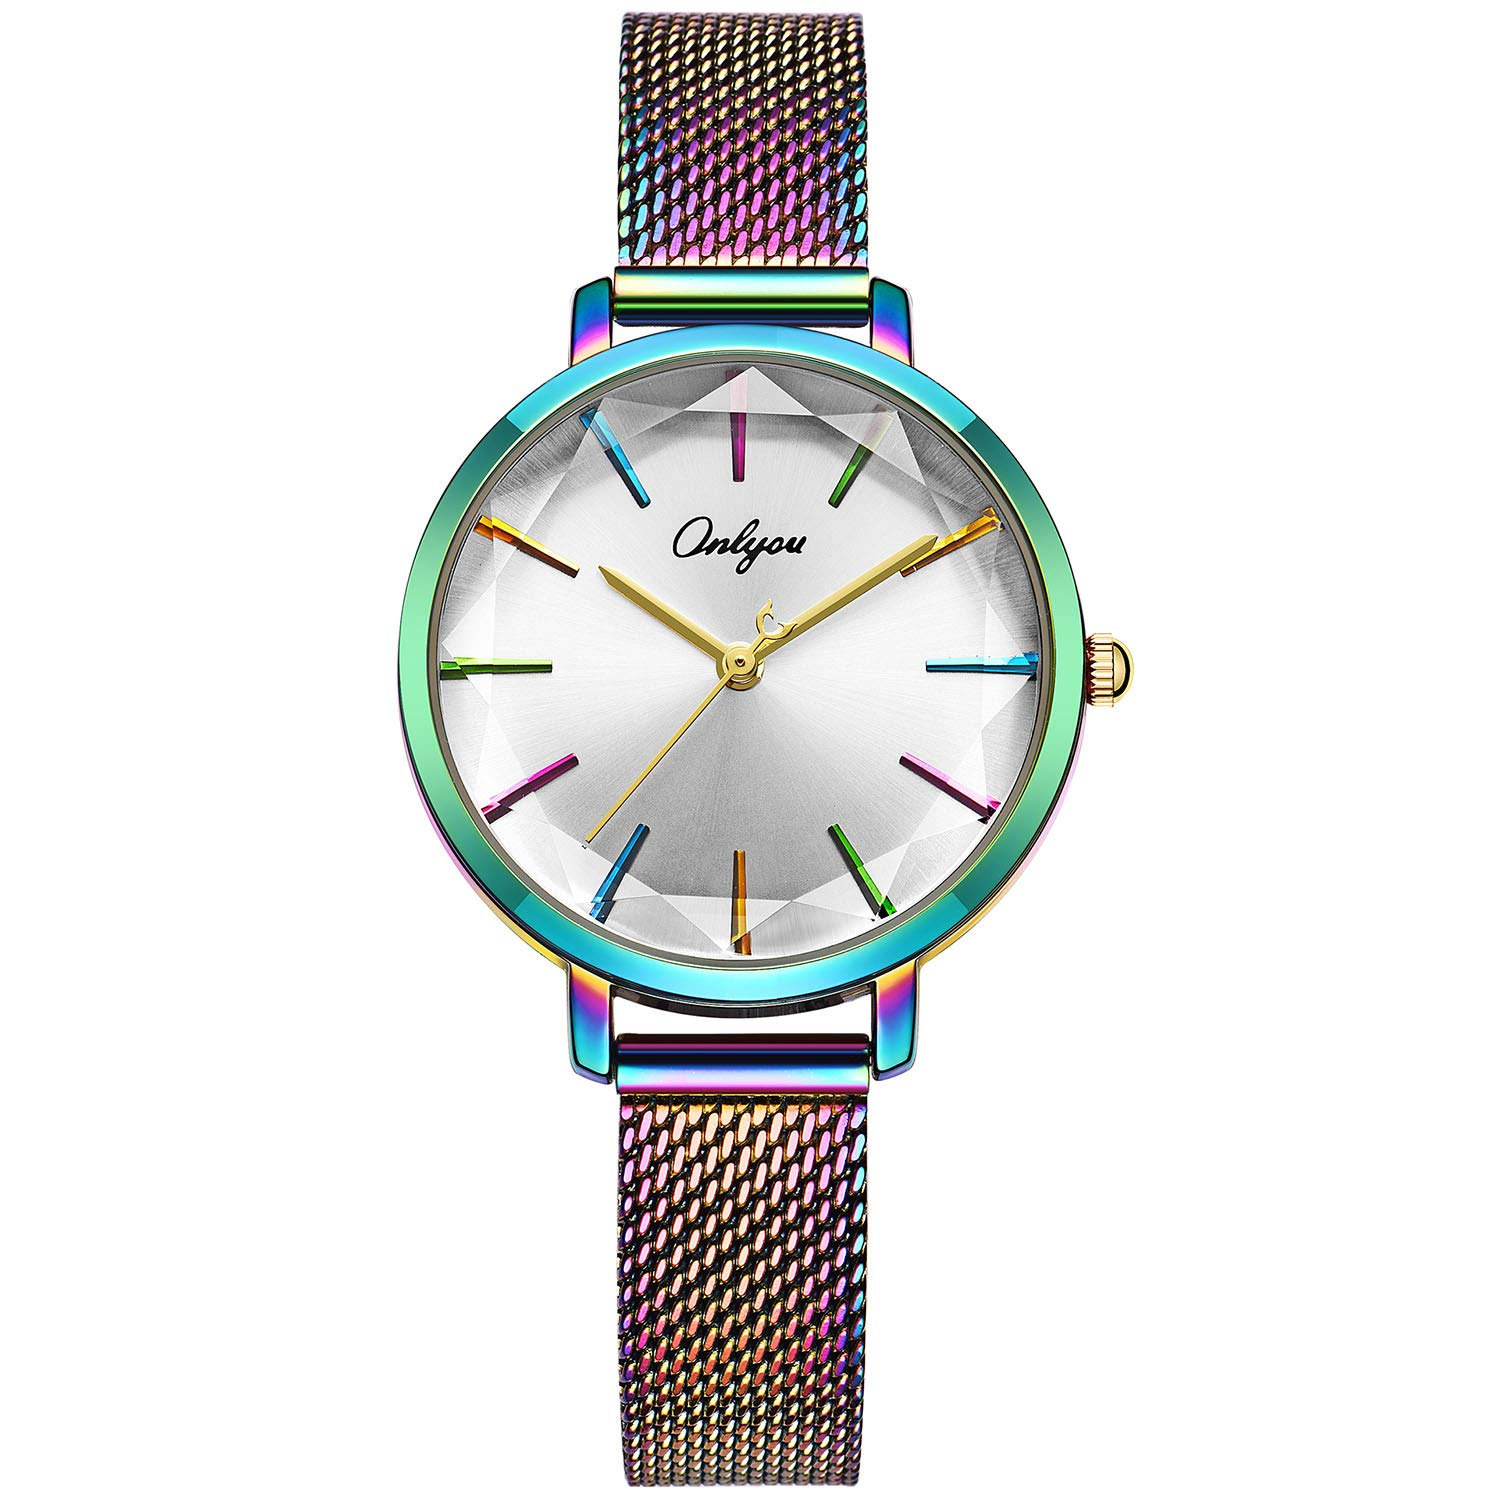 ONLYOU Women's Fashion Watches,Unique Face Design and 30M Waterproof,Analog Quartz Wristwatches with Stainless Steel Mesh Band (Colorful)